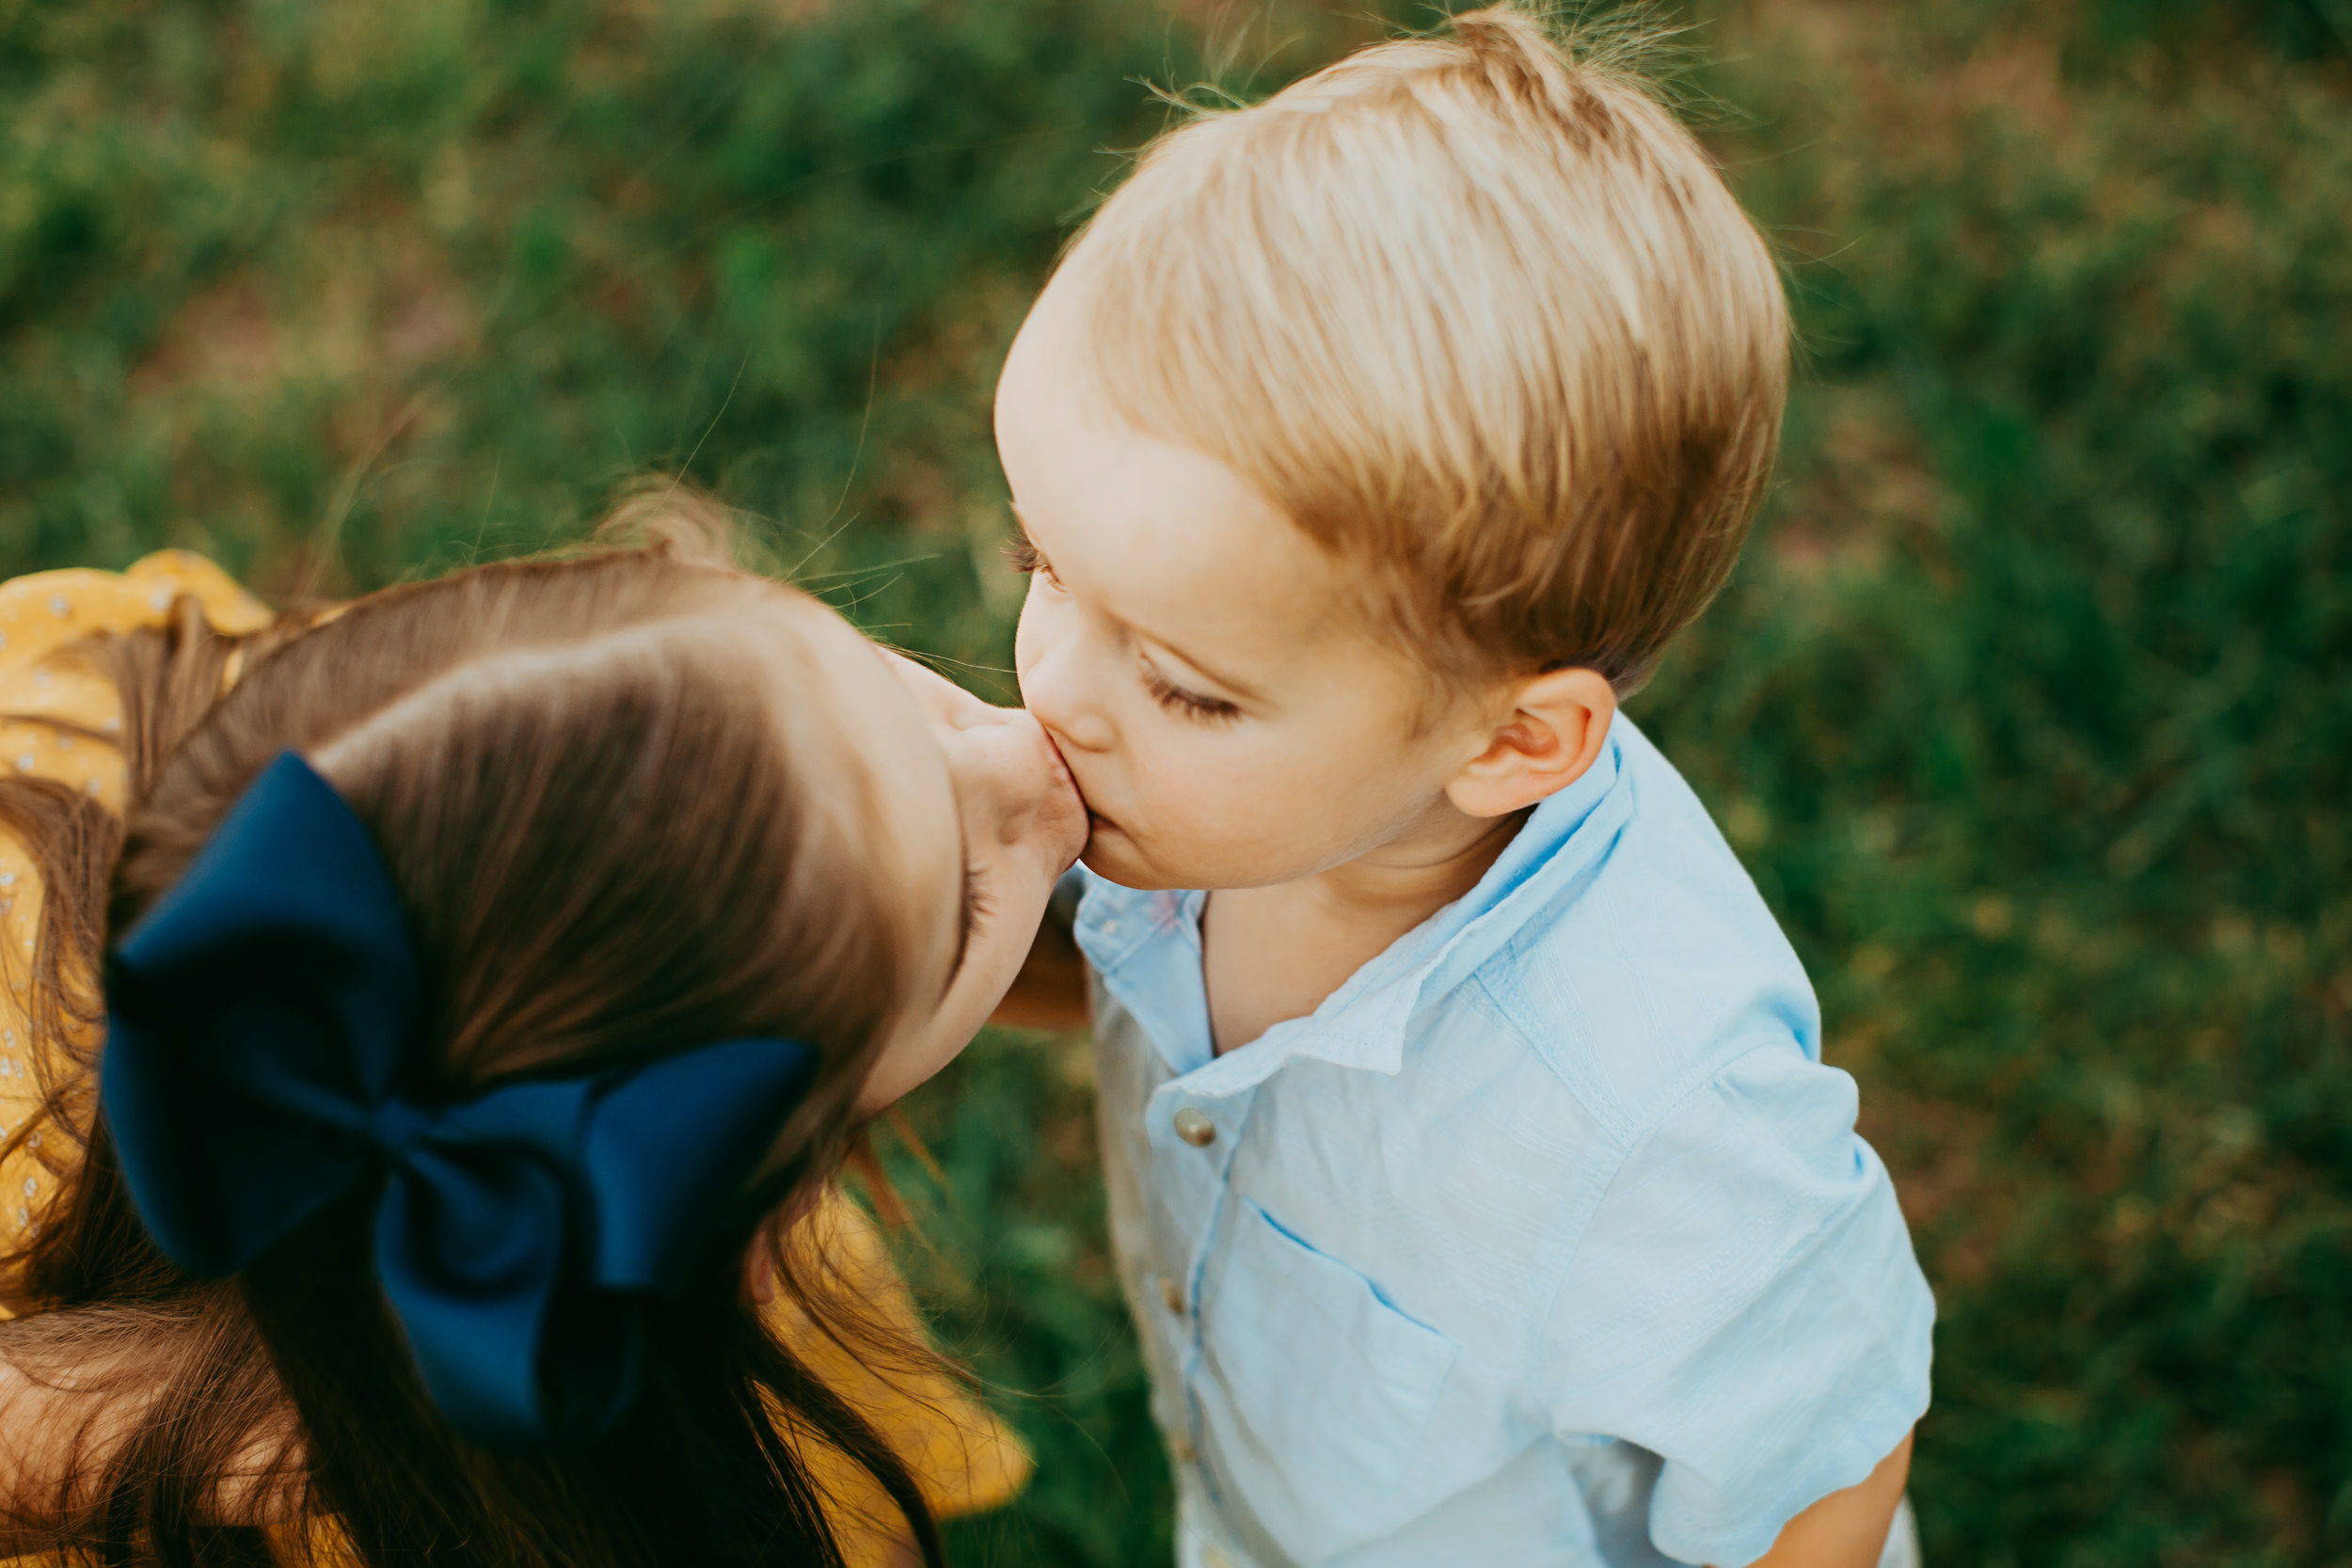 Sibling kiss between big sister and her younger brother #tealawardphotography #texasfamilyphotographer #amarillophotographer #amarillofamilyphotographer #lifestylephotography #emotionalphotography #familyphotosoot #family #lovingsiblings #purejoy #familyphotos #familyphotographer #greatoutdoors #naturalfamilyinteraction